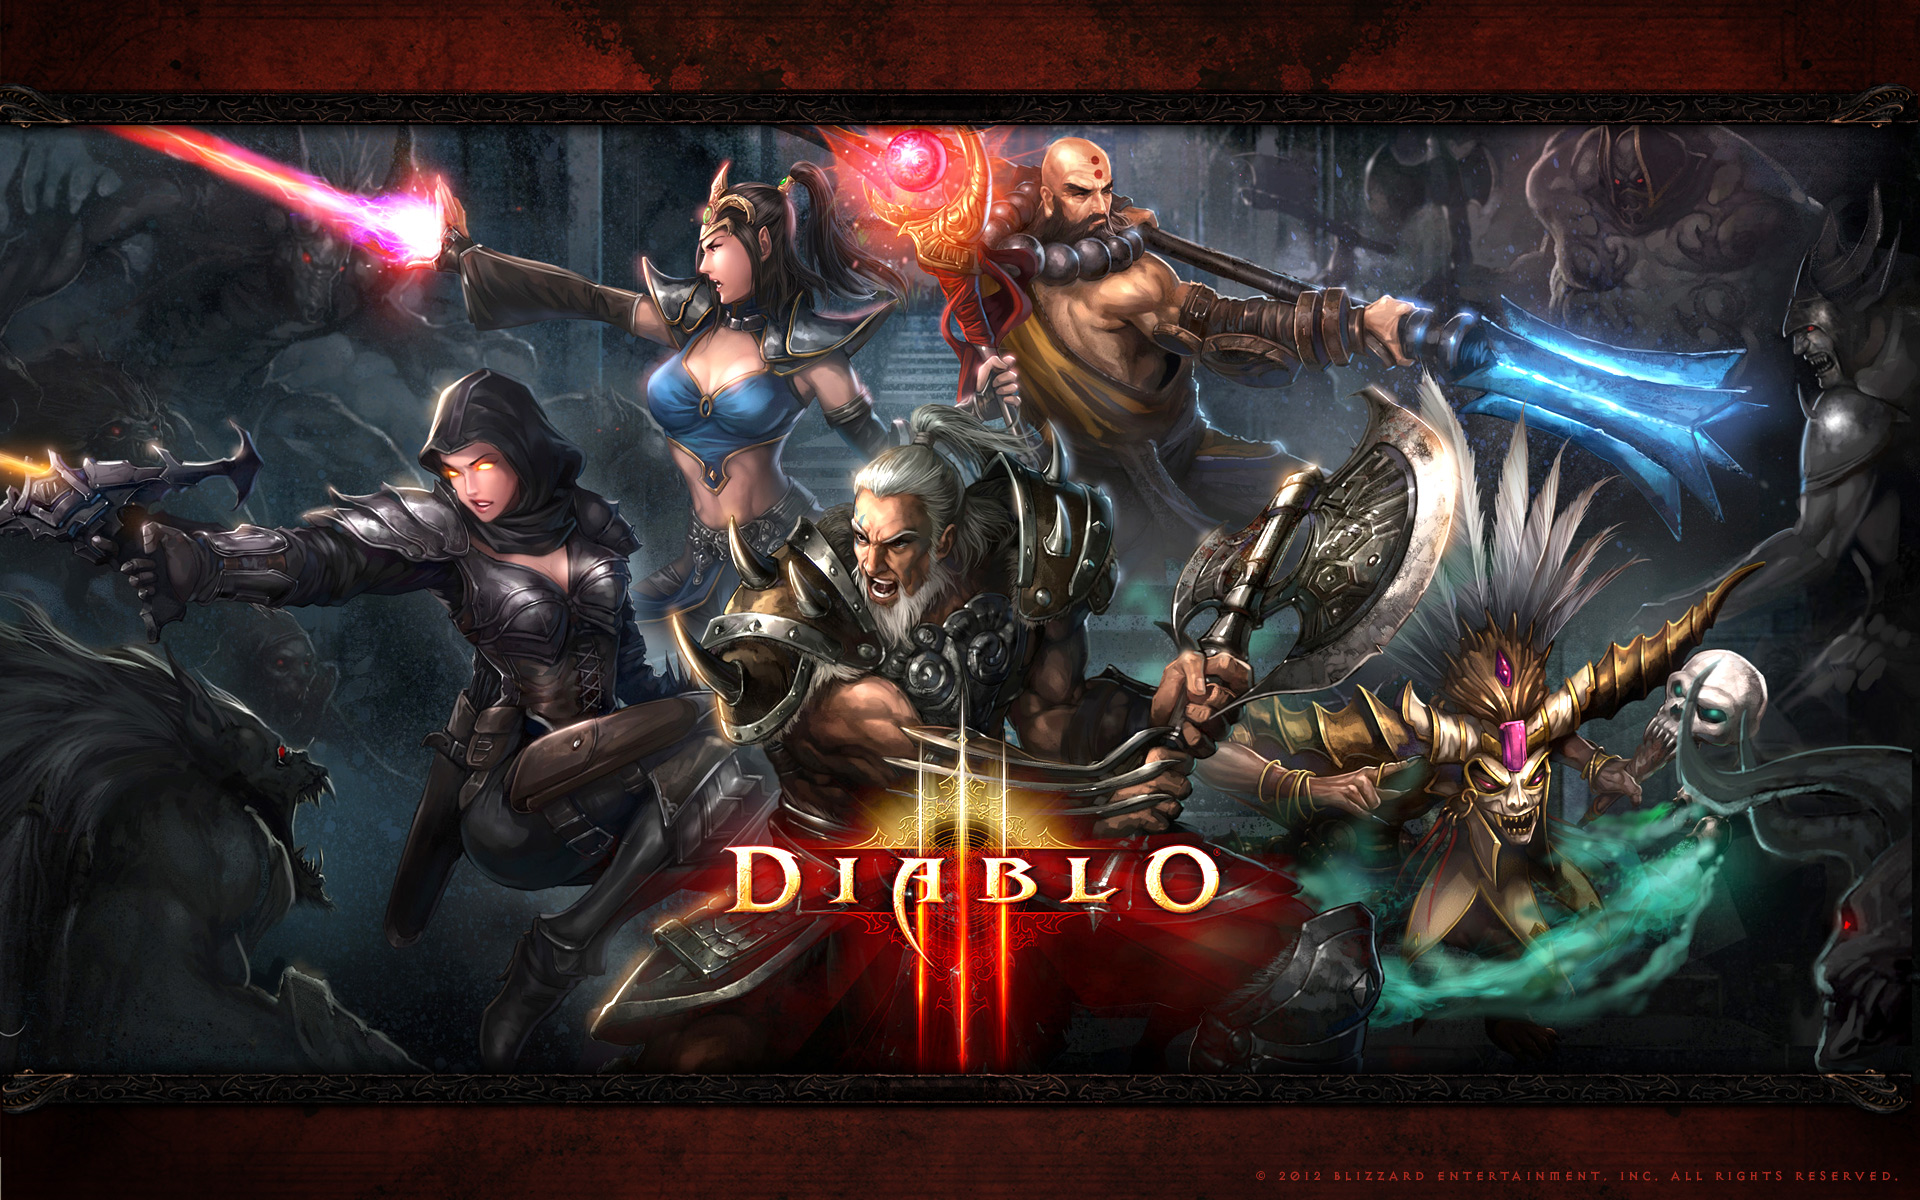 Diablo 3 Wallpapers High Quality Download Free